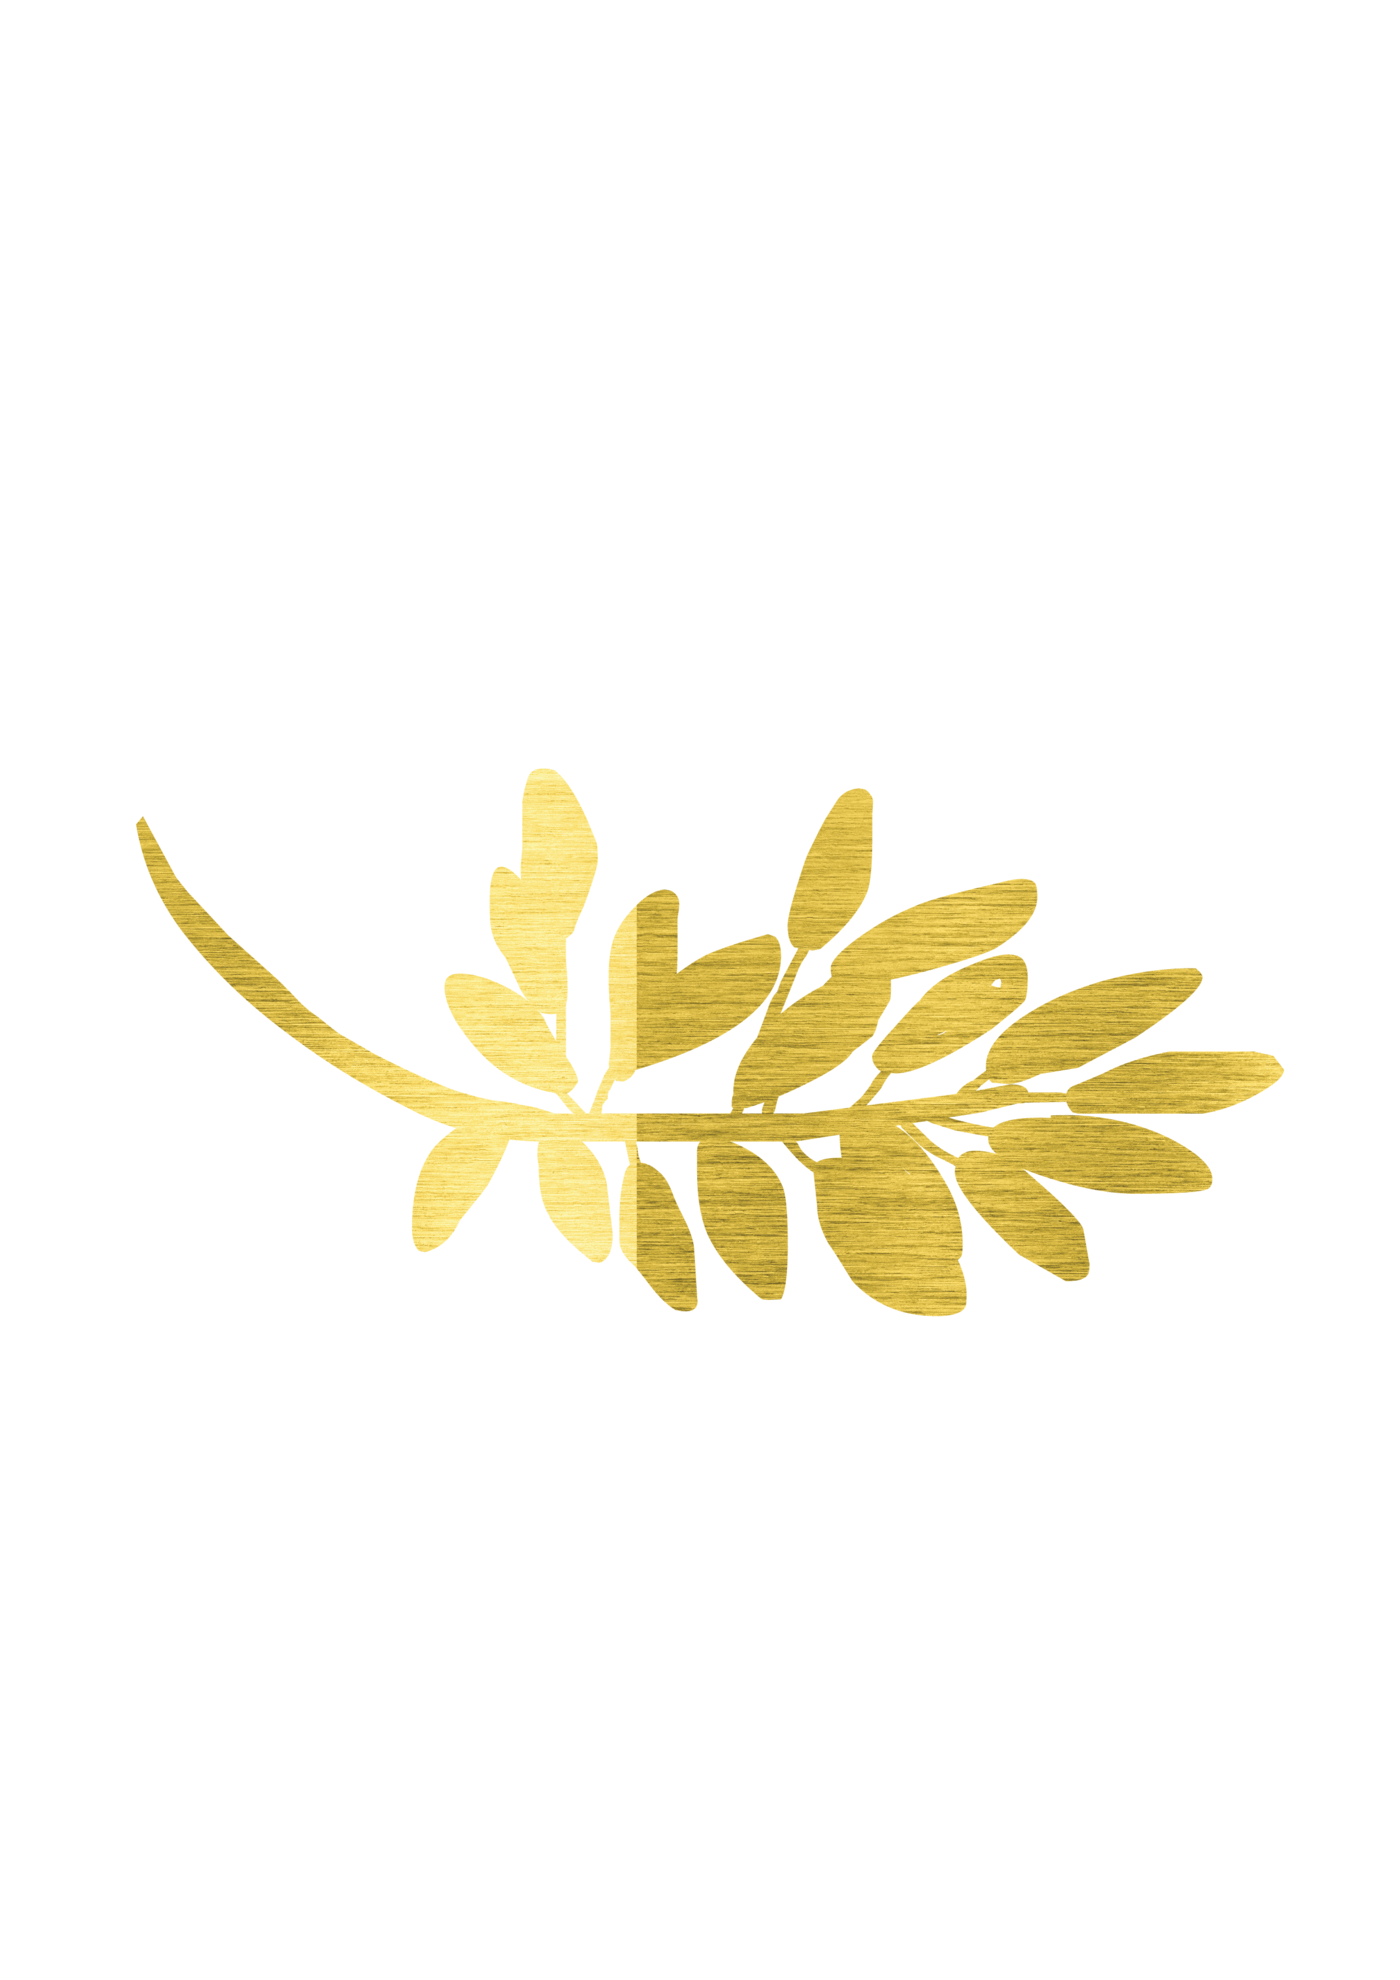 Gold Leaf Png (104+ images in Collection) Page 2.